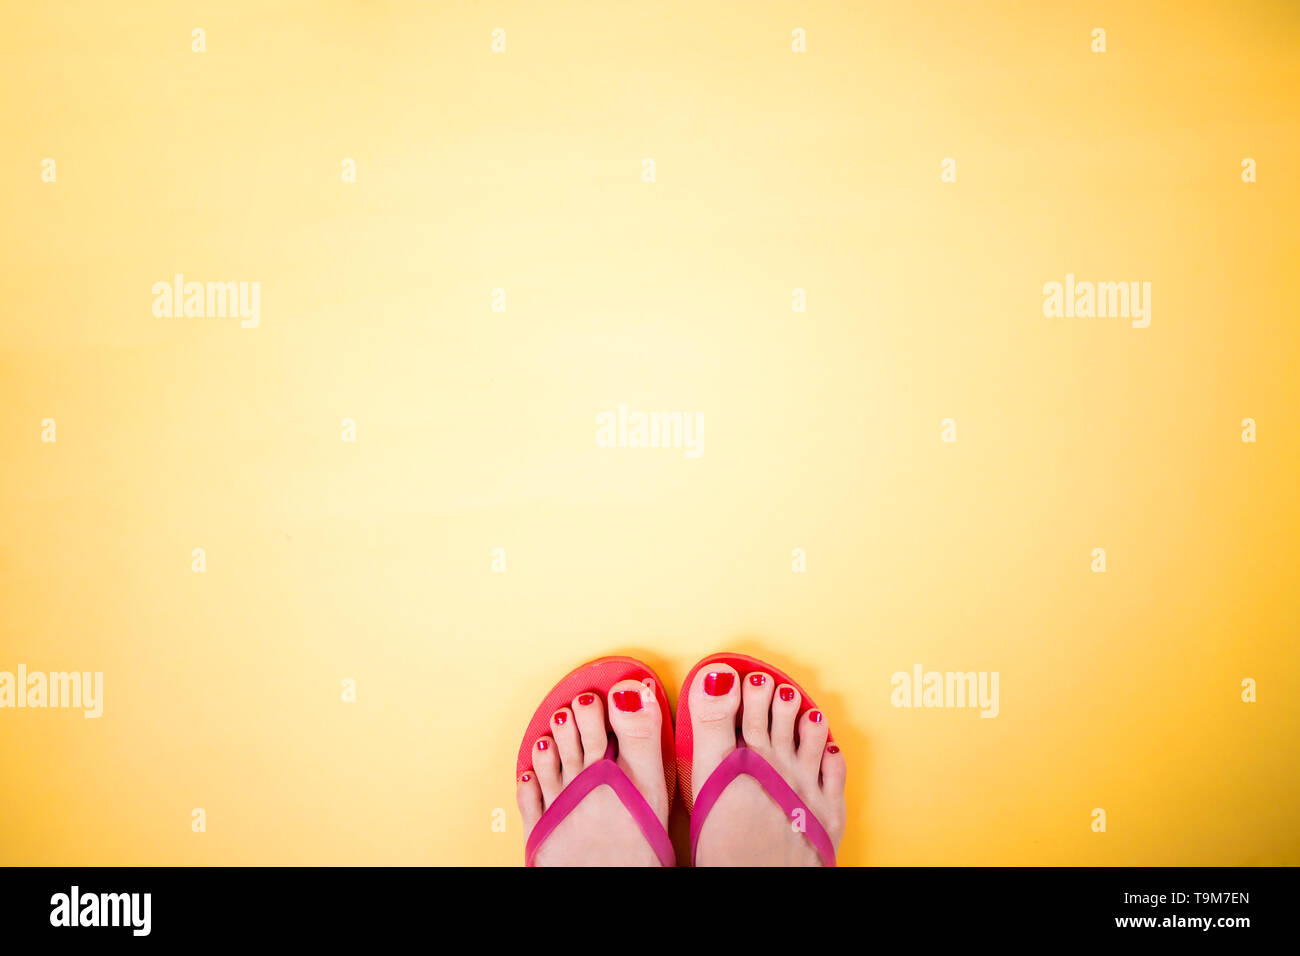 Woman's legs with red pedicure wearing pink flip flops on yellow background with copy space. Summer, vacation, travel, beach concept. - Stock Image